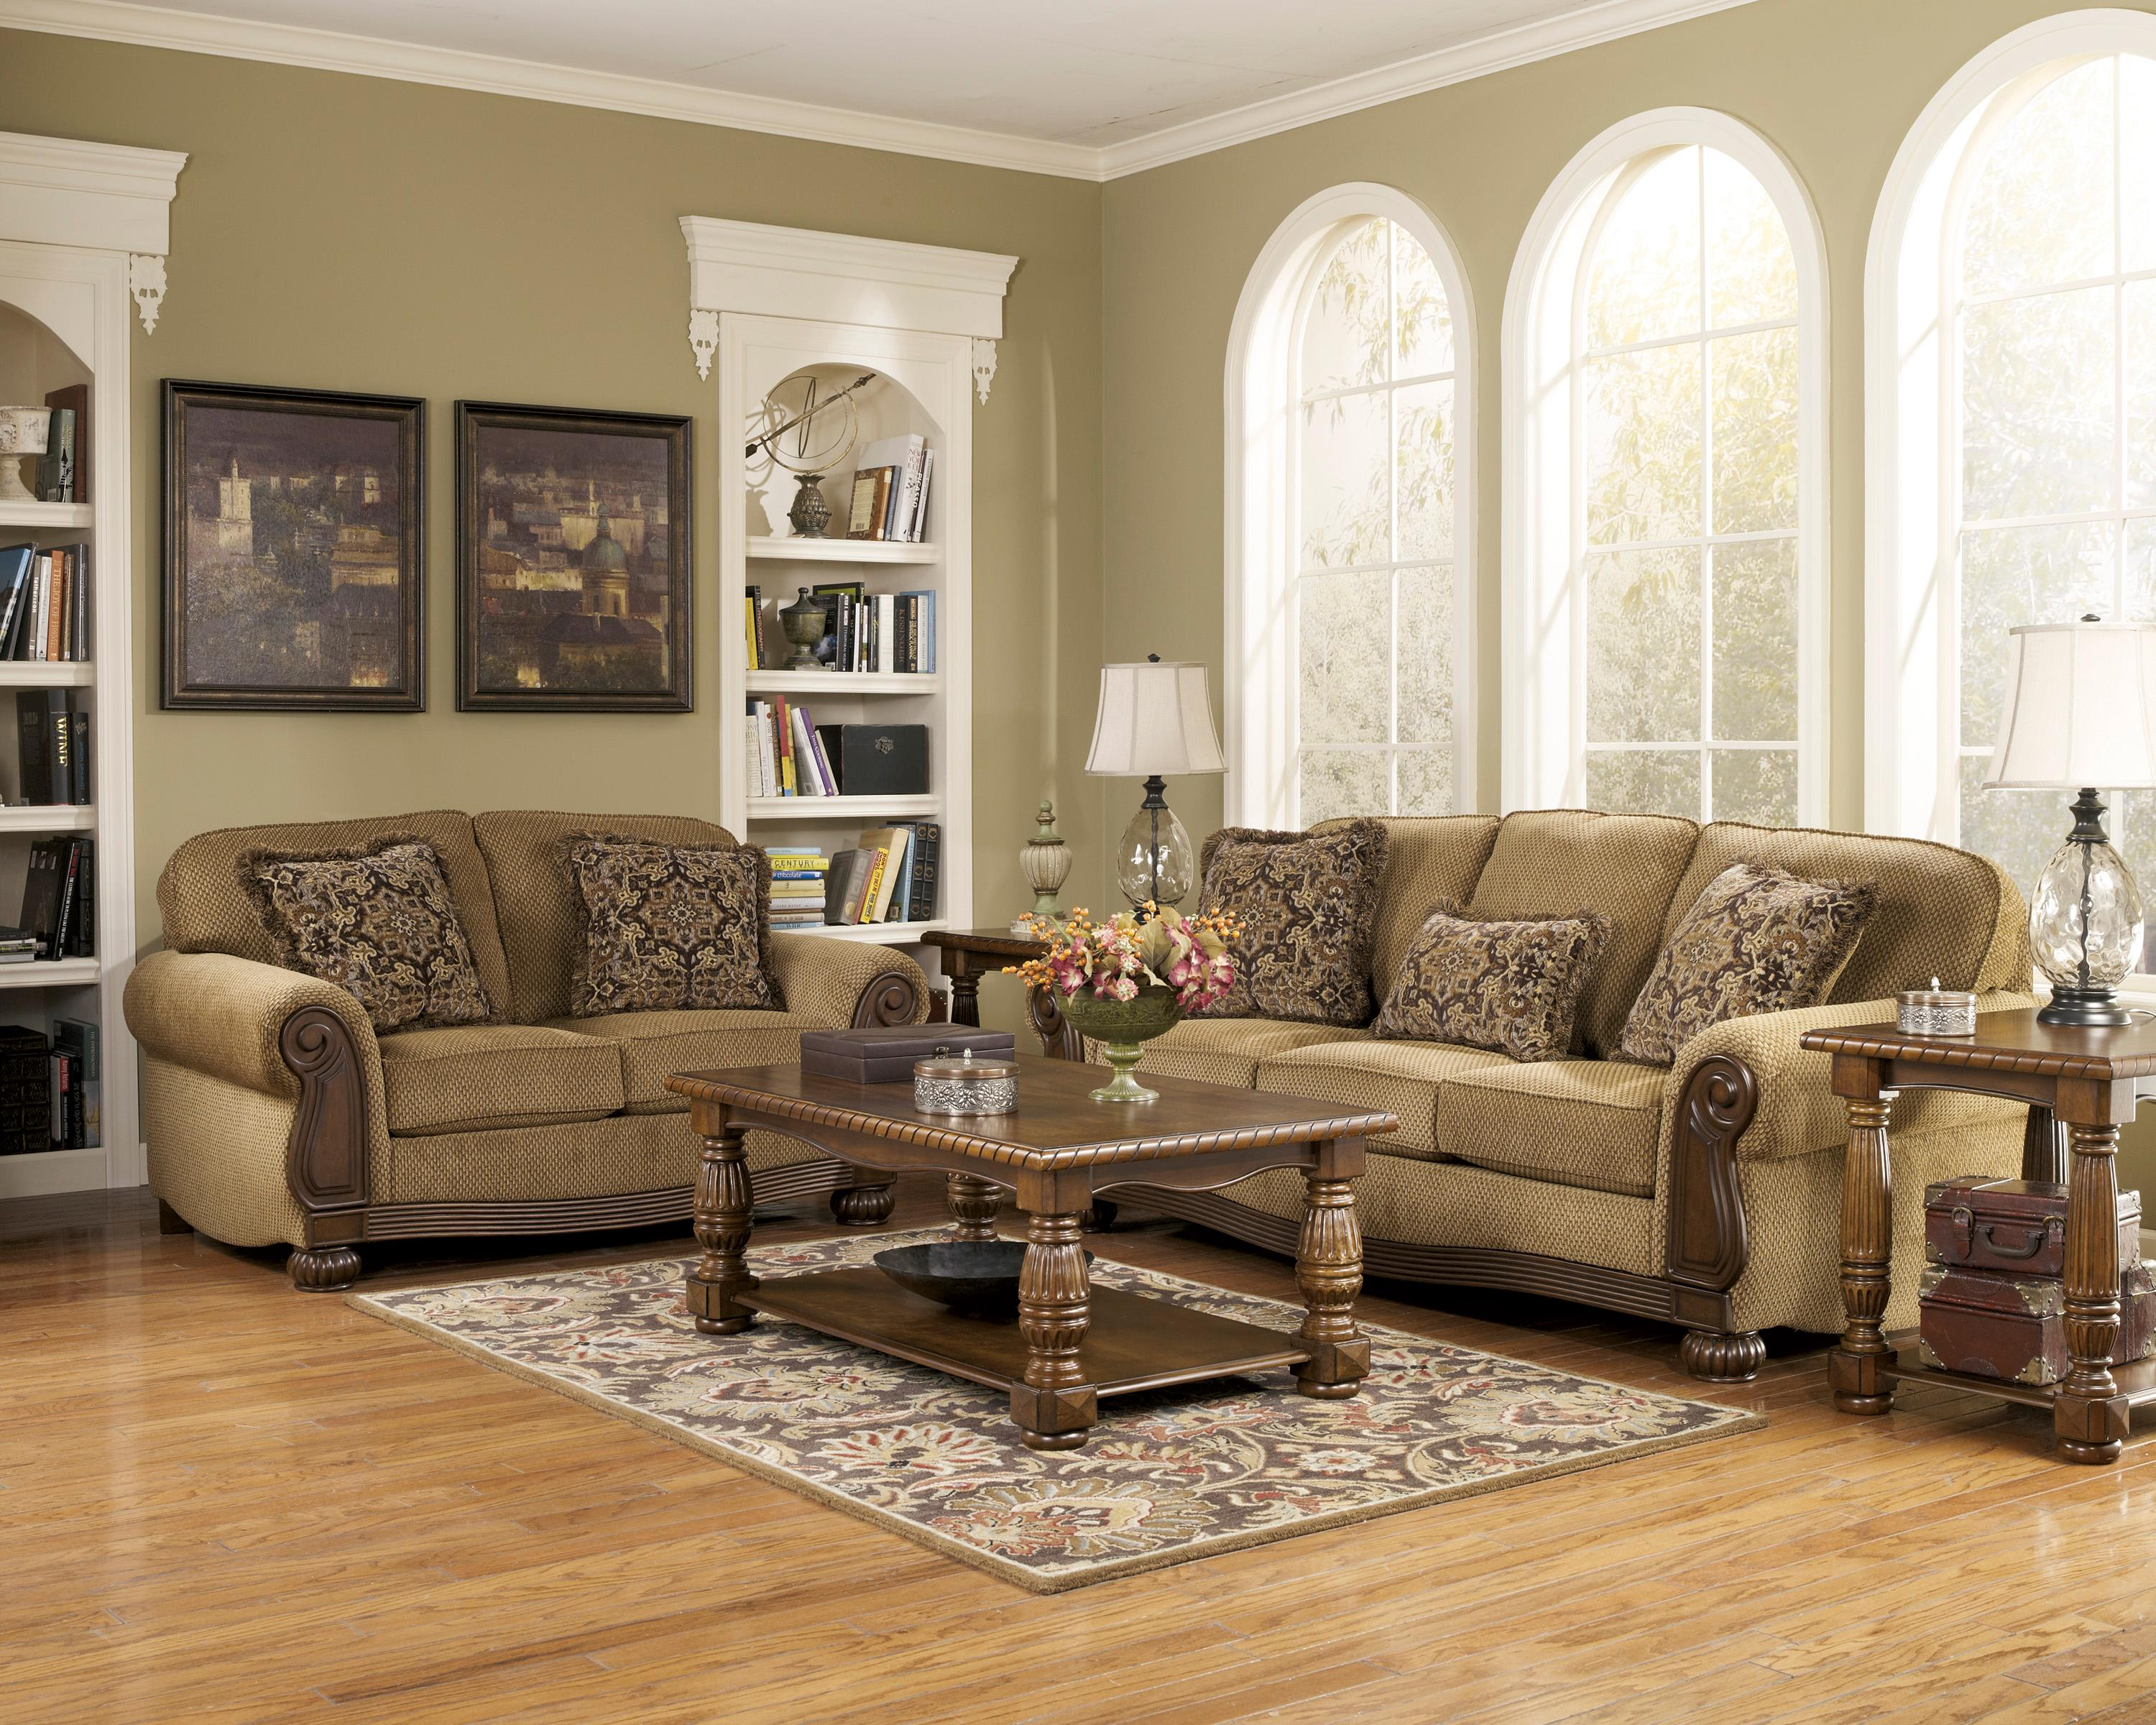 Signature Design by Ashley Lynnwood - Amber Stationary Living Room Group - Item Number: 68500 Living Room Group 1